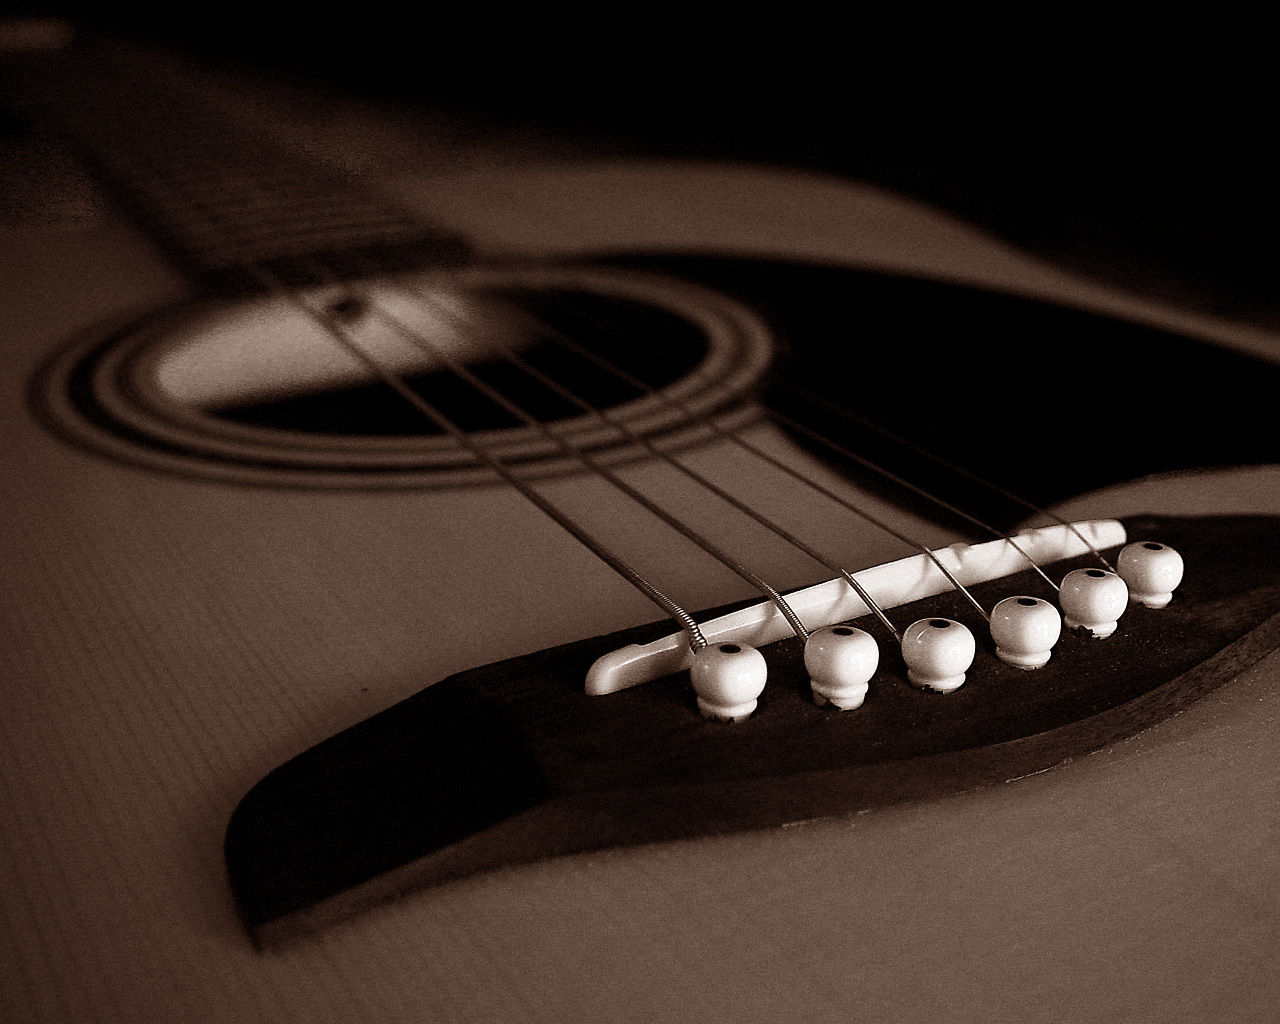 acoustic guitar wallpaper high resolution wallpapersafari. Black Bedroom Furniture Sets. Home Design Ideas